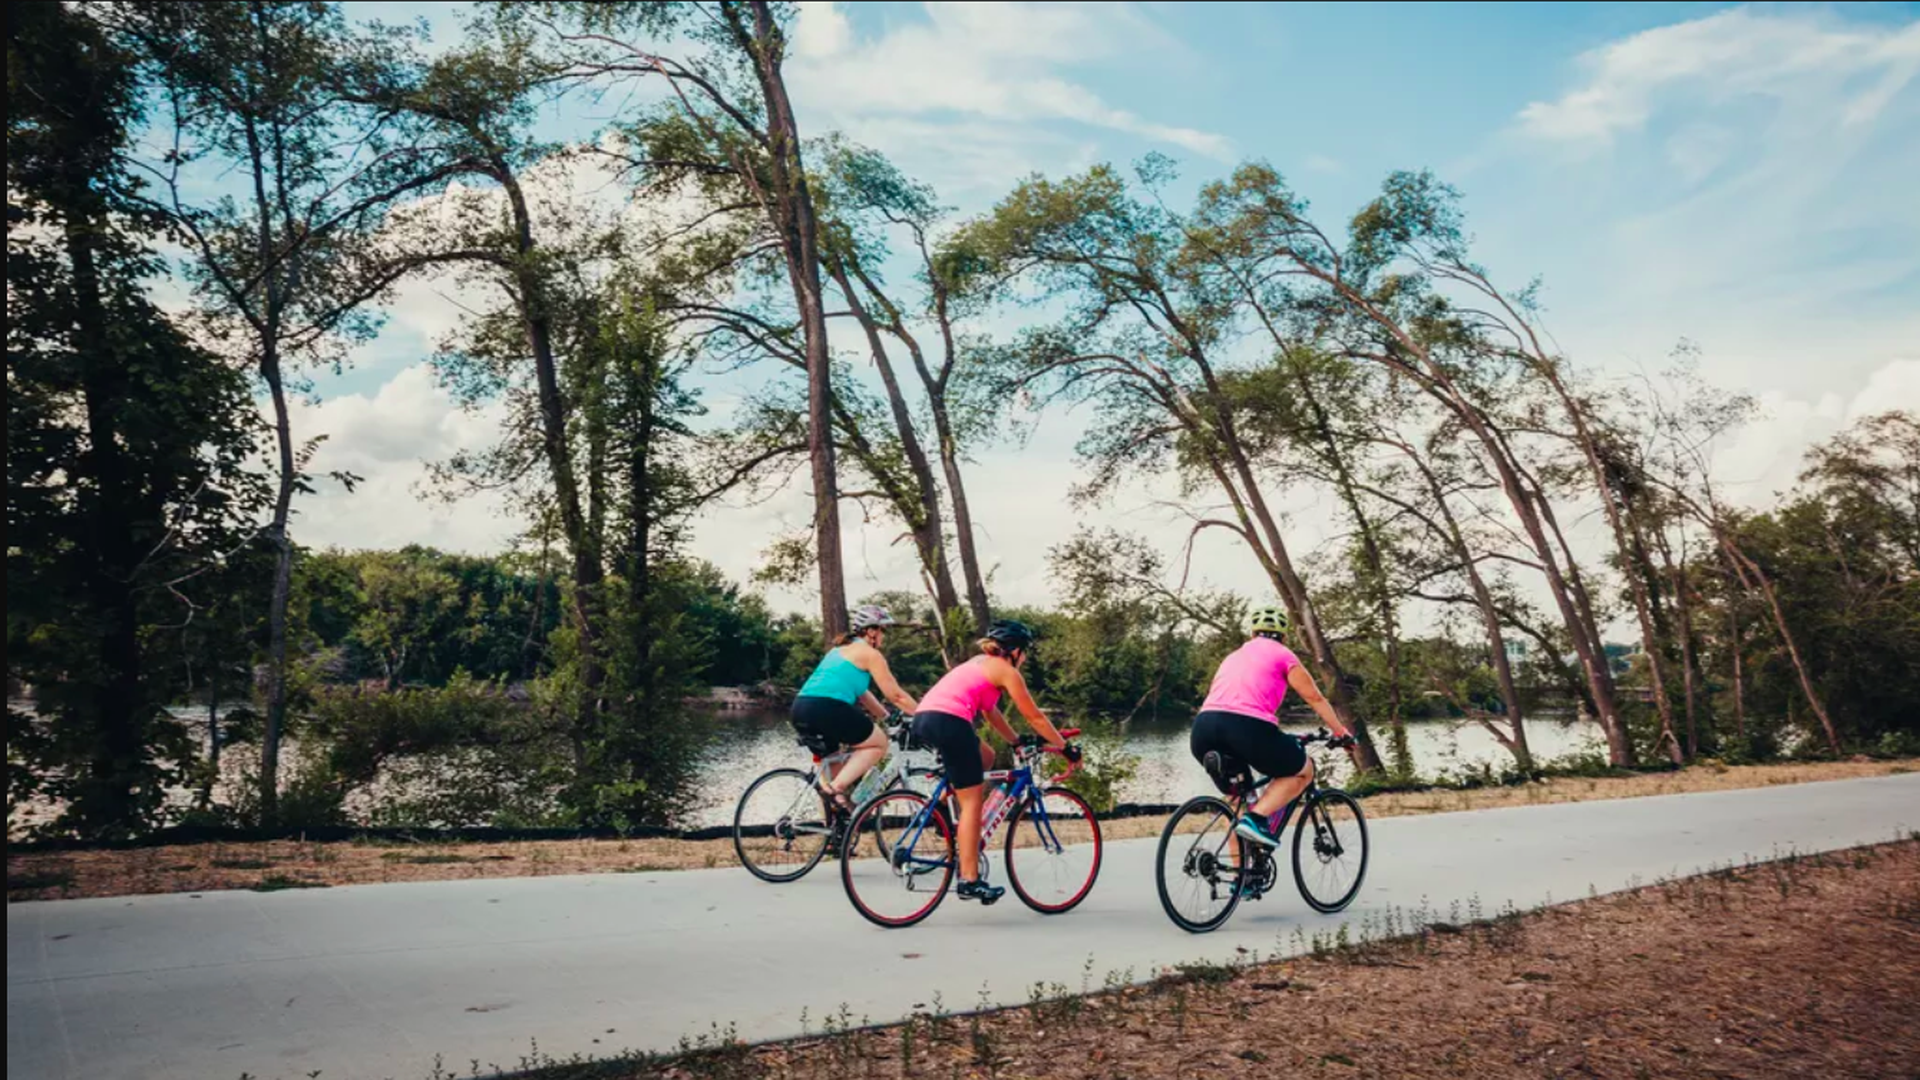 In this image, three bicyclists in brightly colored shirts and black shorts bike down a wooded street.